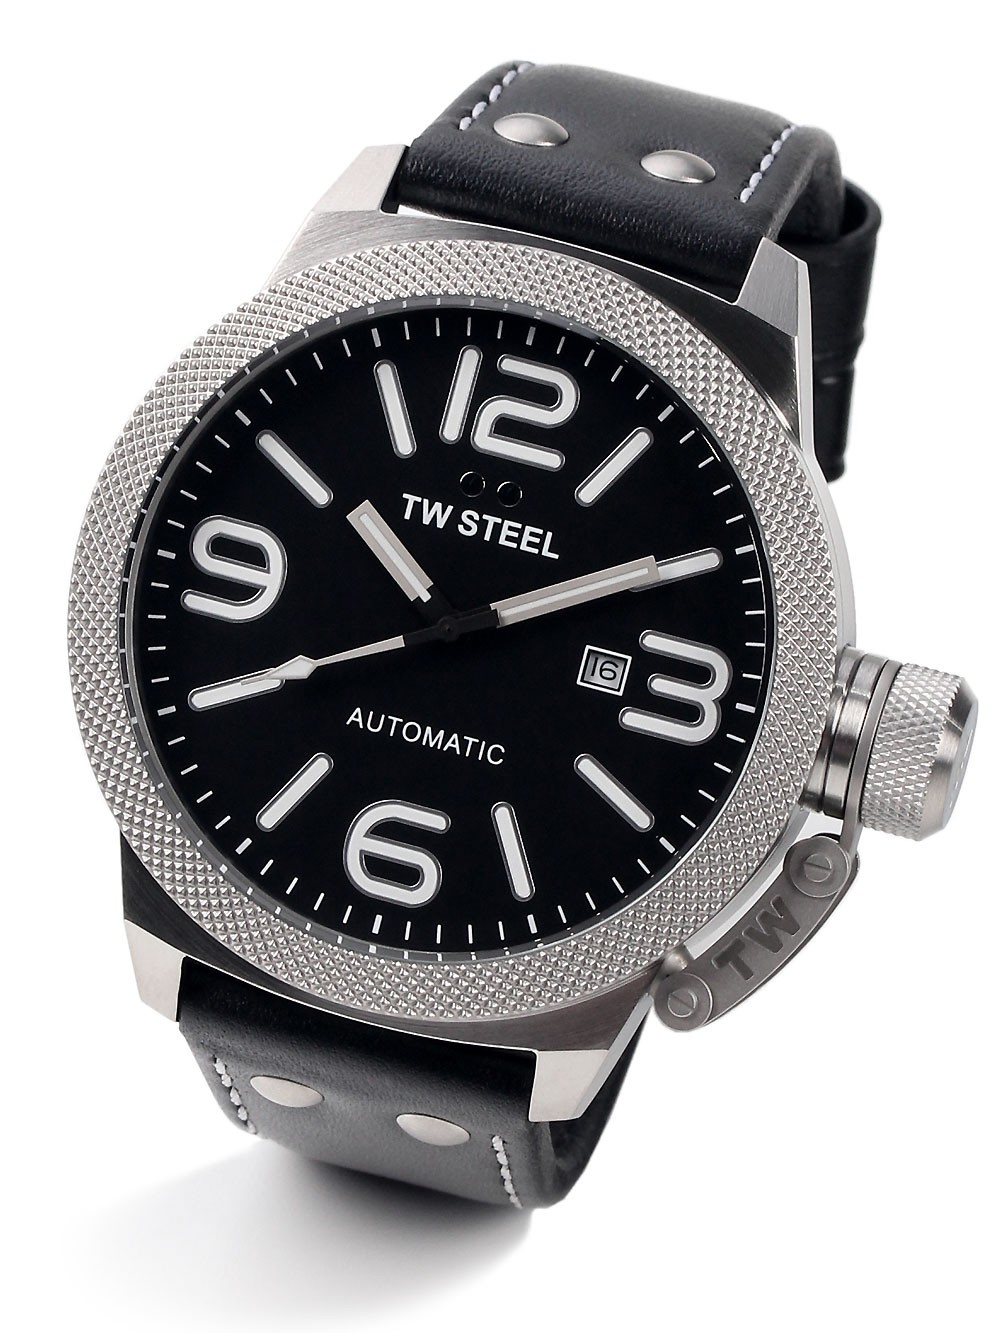 montres chrono12 tw steel twa951 canteen automatik 50mm 10atm. Black Bedroom Furniture Sets. Home Design Ideas